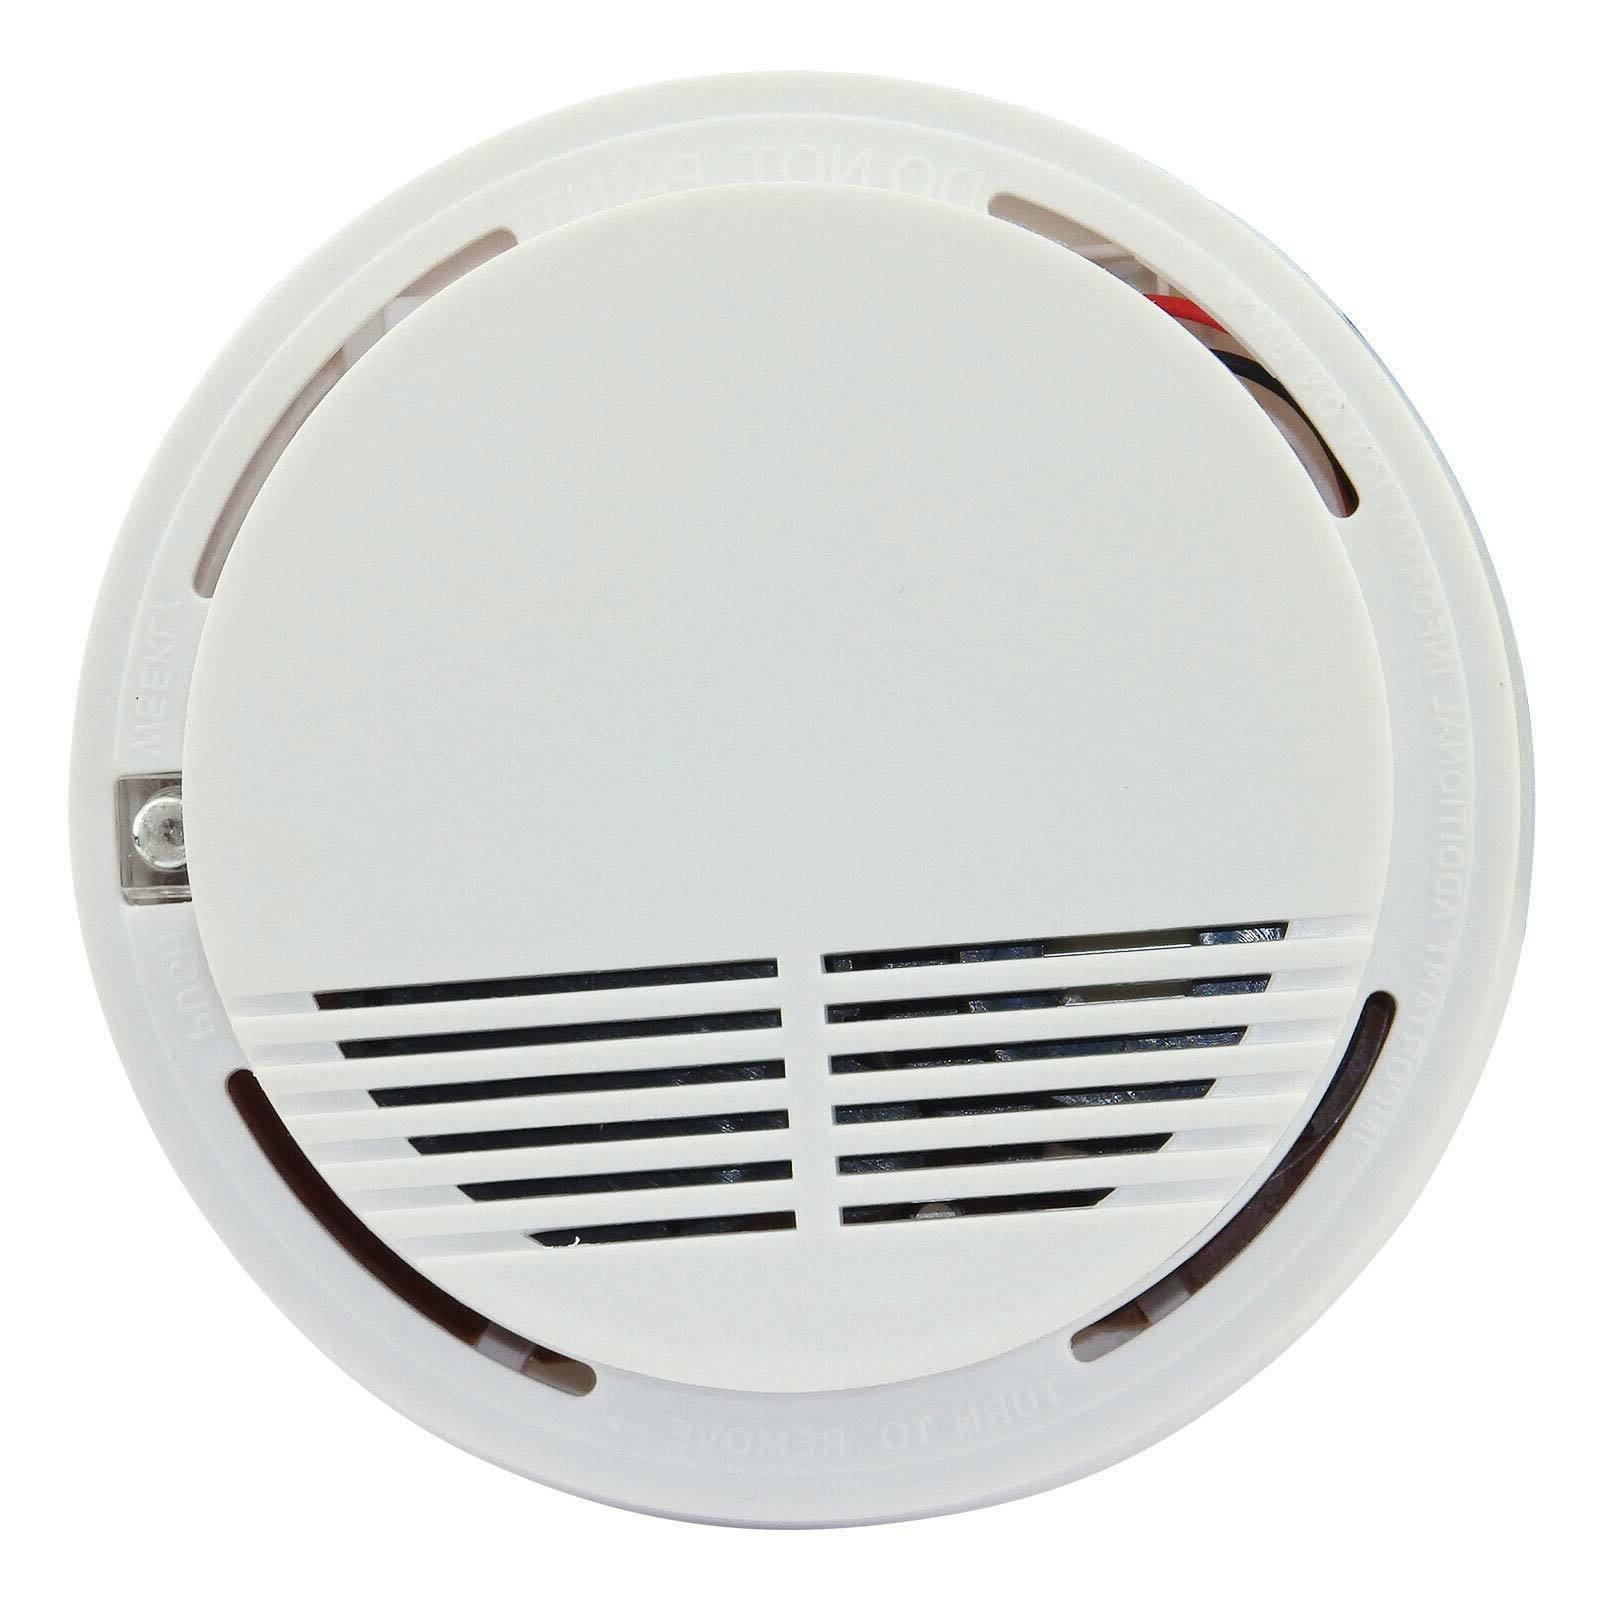 Home Smoke Alarm Battery System